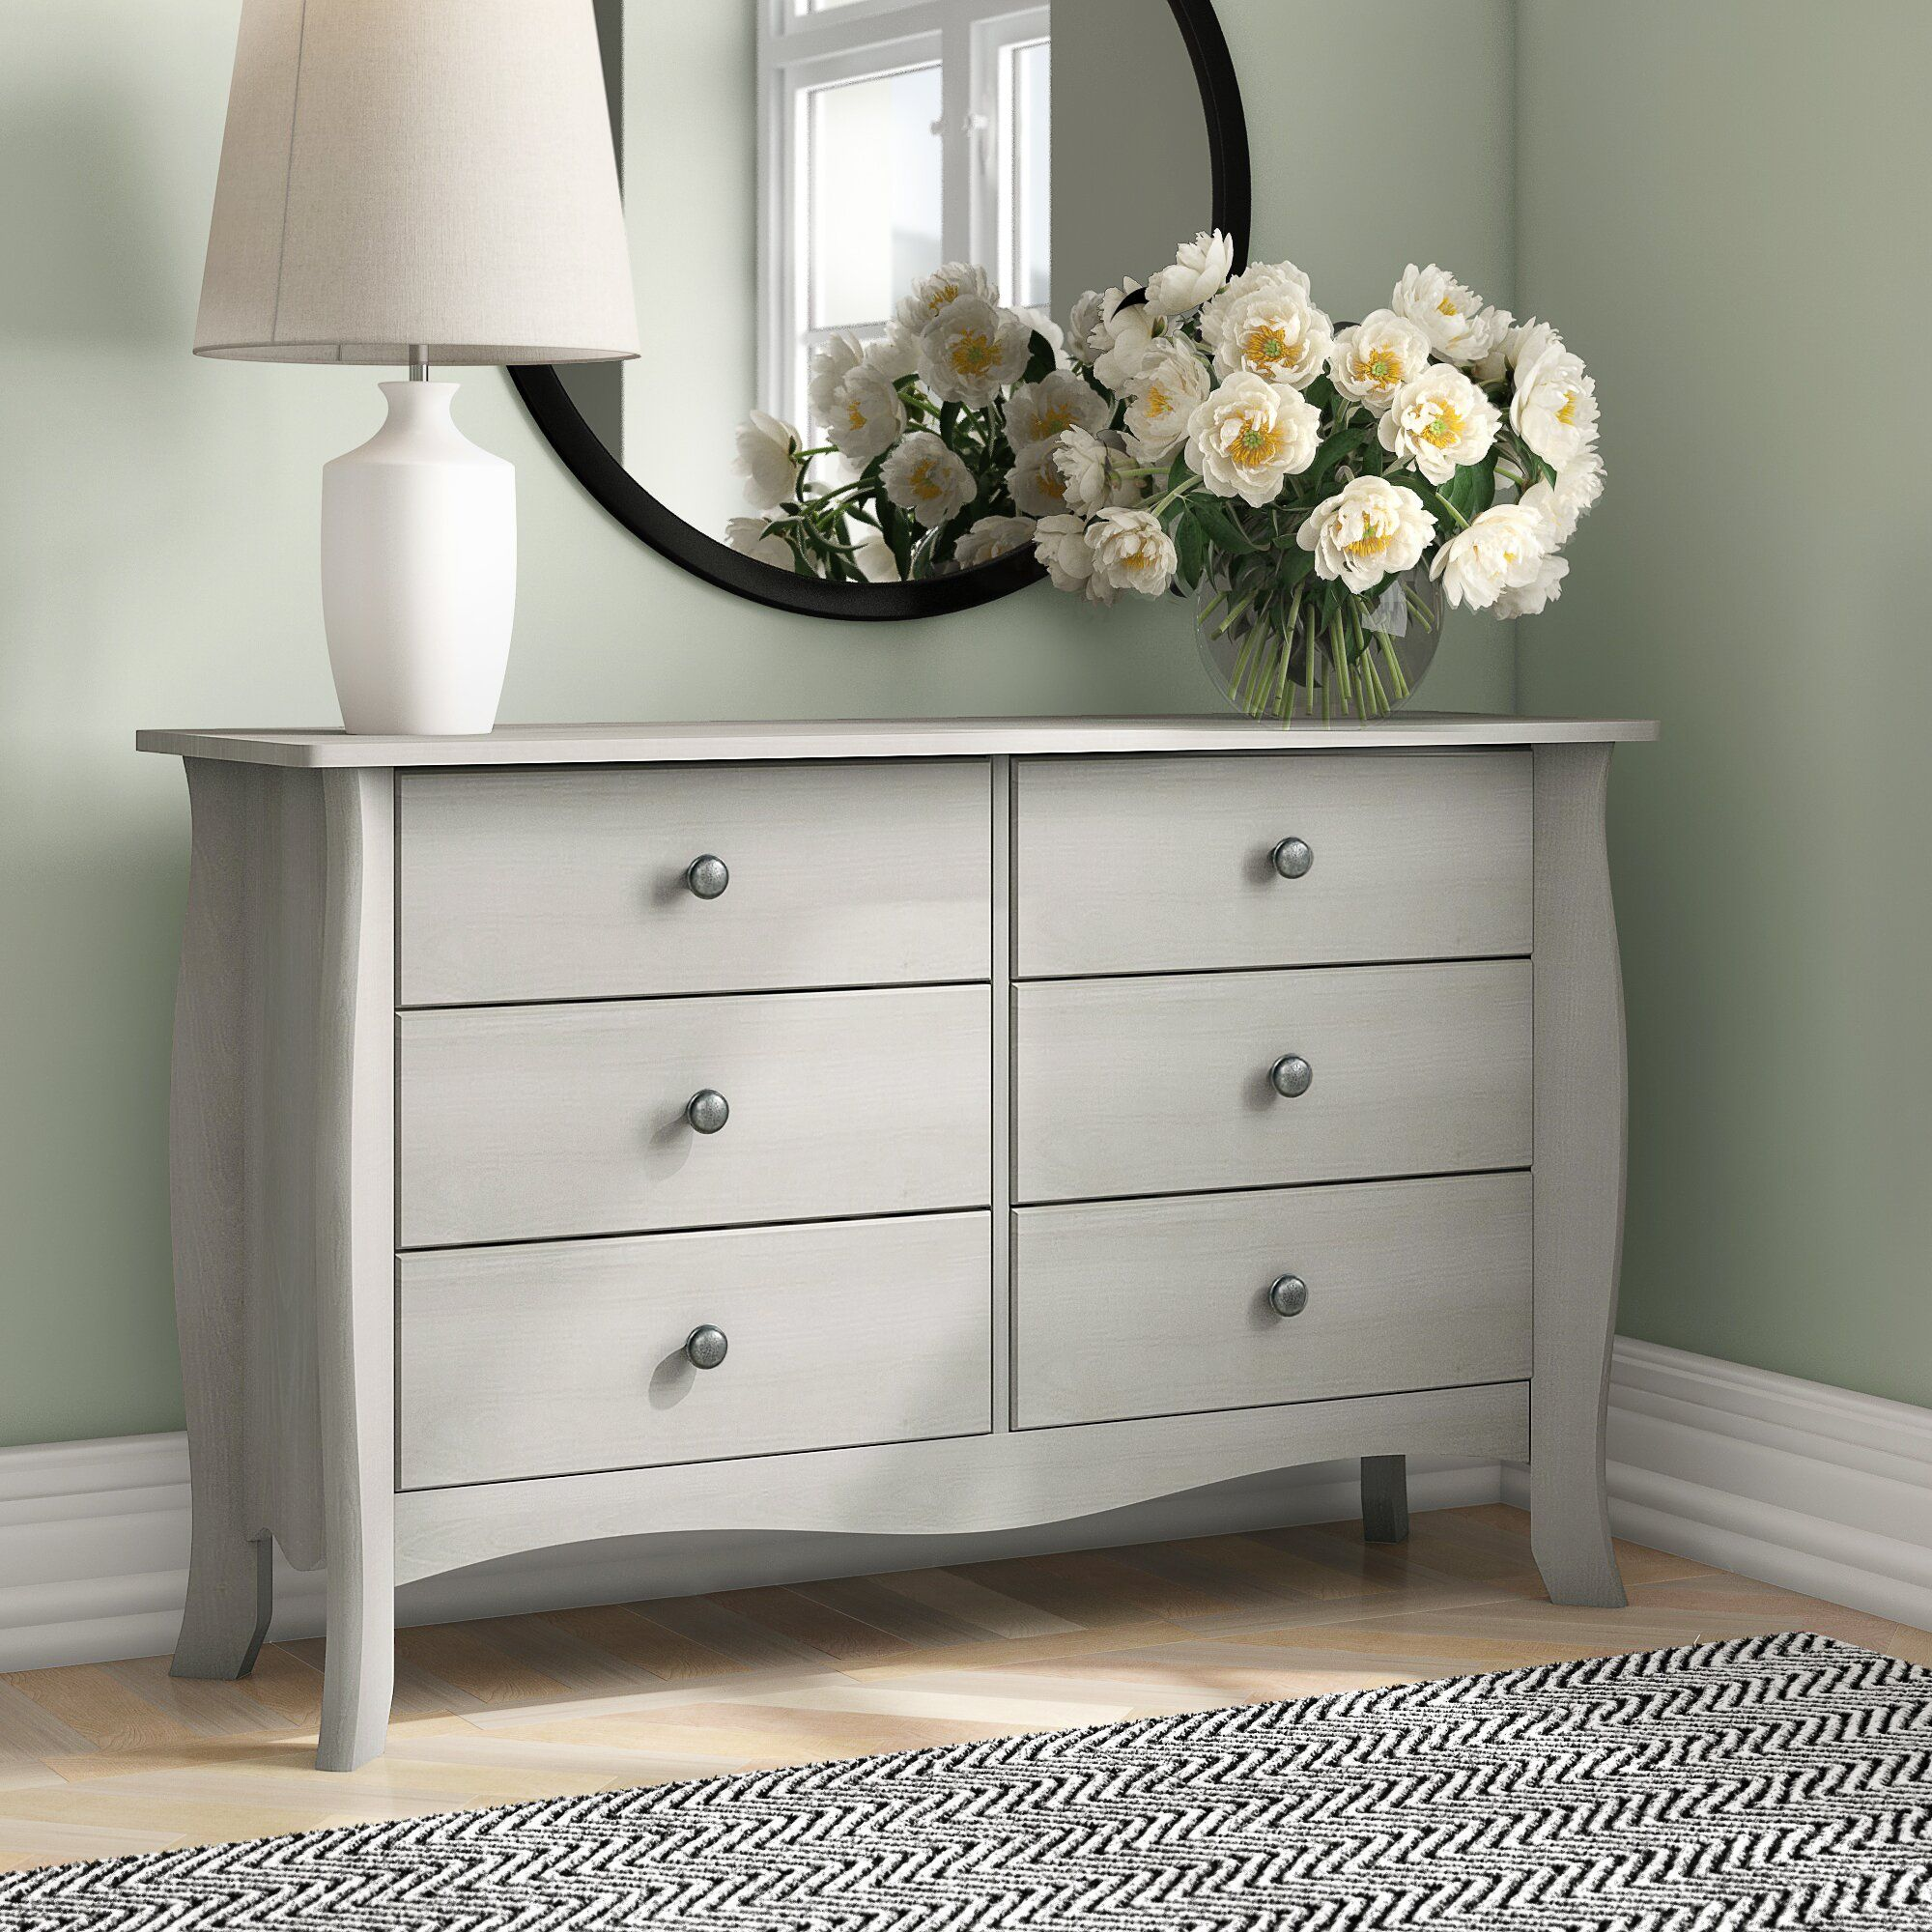 Brambly Cottage Cerny 6 Drawer Chest Reviews Wayfair Co Uk 6 Drawer Chest Chest Of Drawers Dresser As Nightstand [ 2000 x 2000 Pixel ]